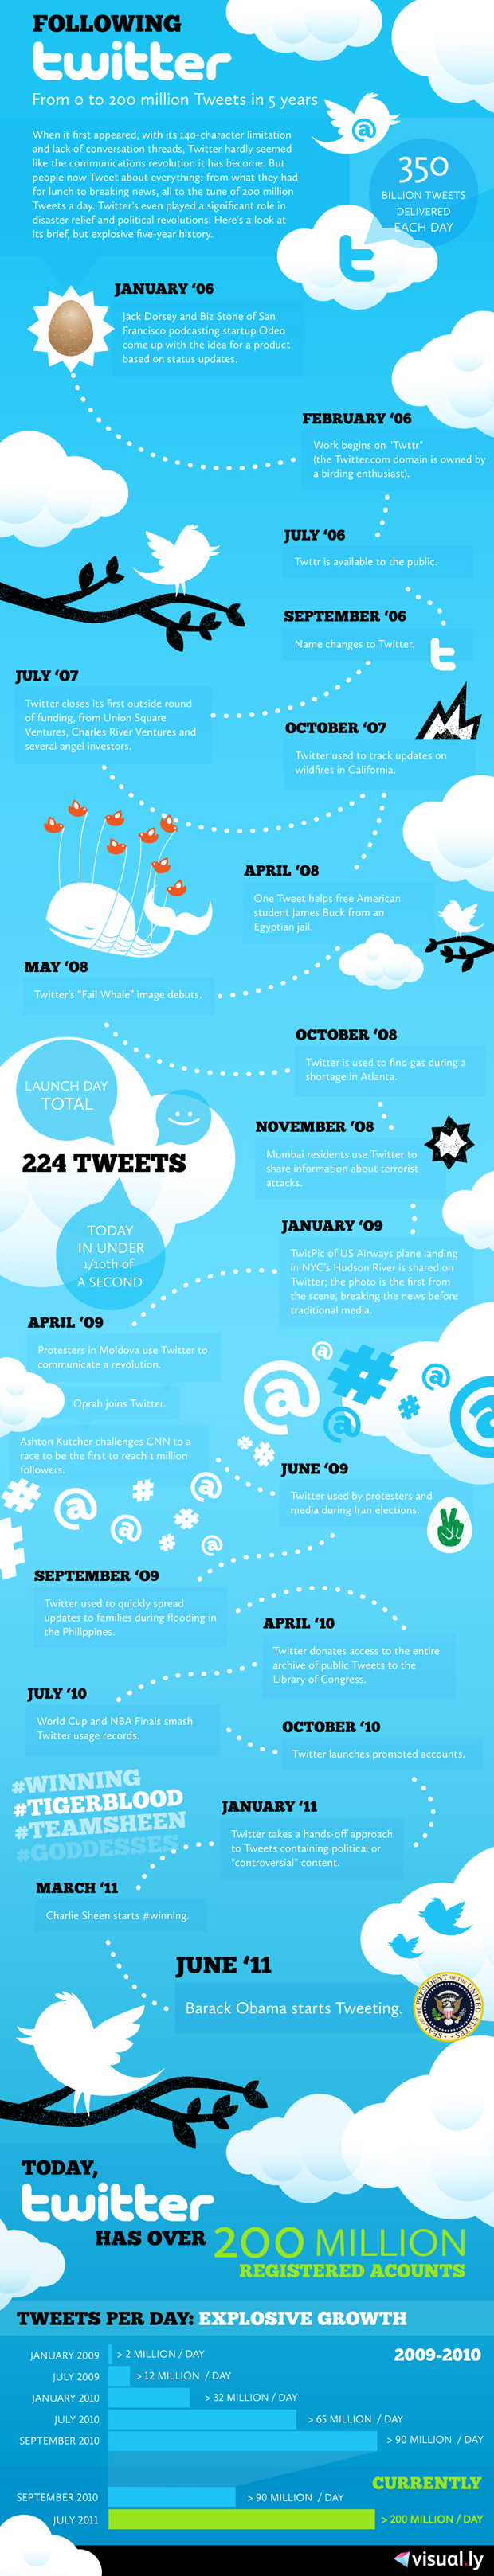 twitter_history_5yrs